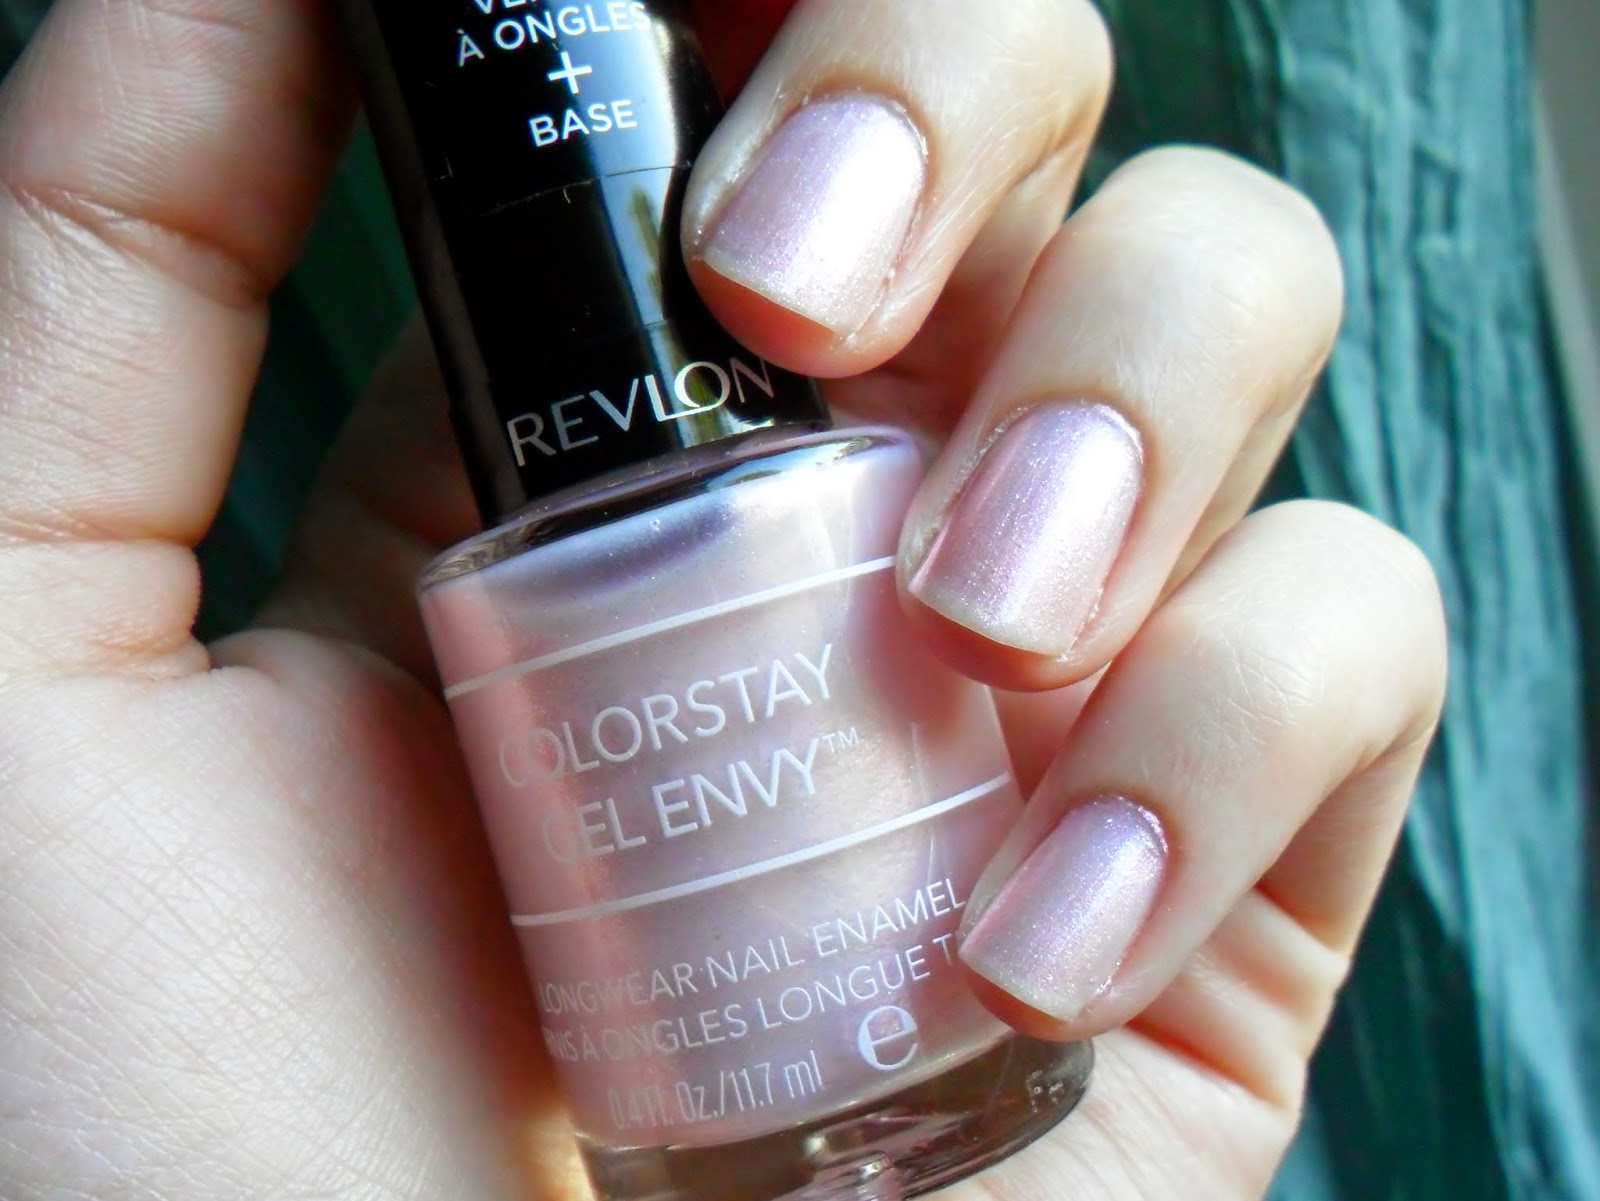 NOTD: Revlon Colorstay Gel Envy Longwear Nail Enamel in 030 Beginner